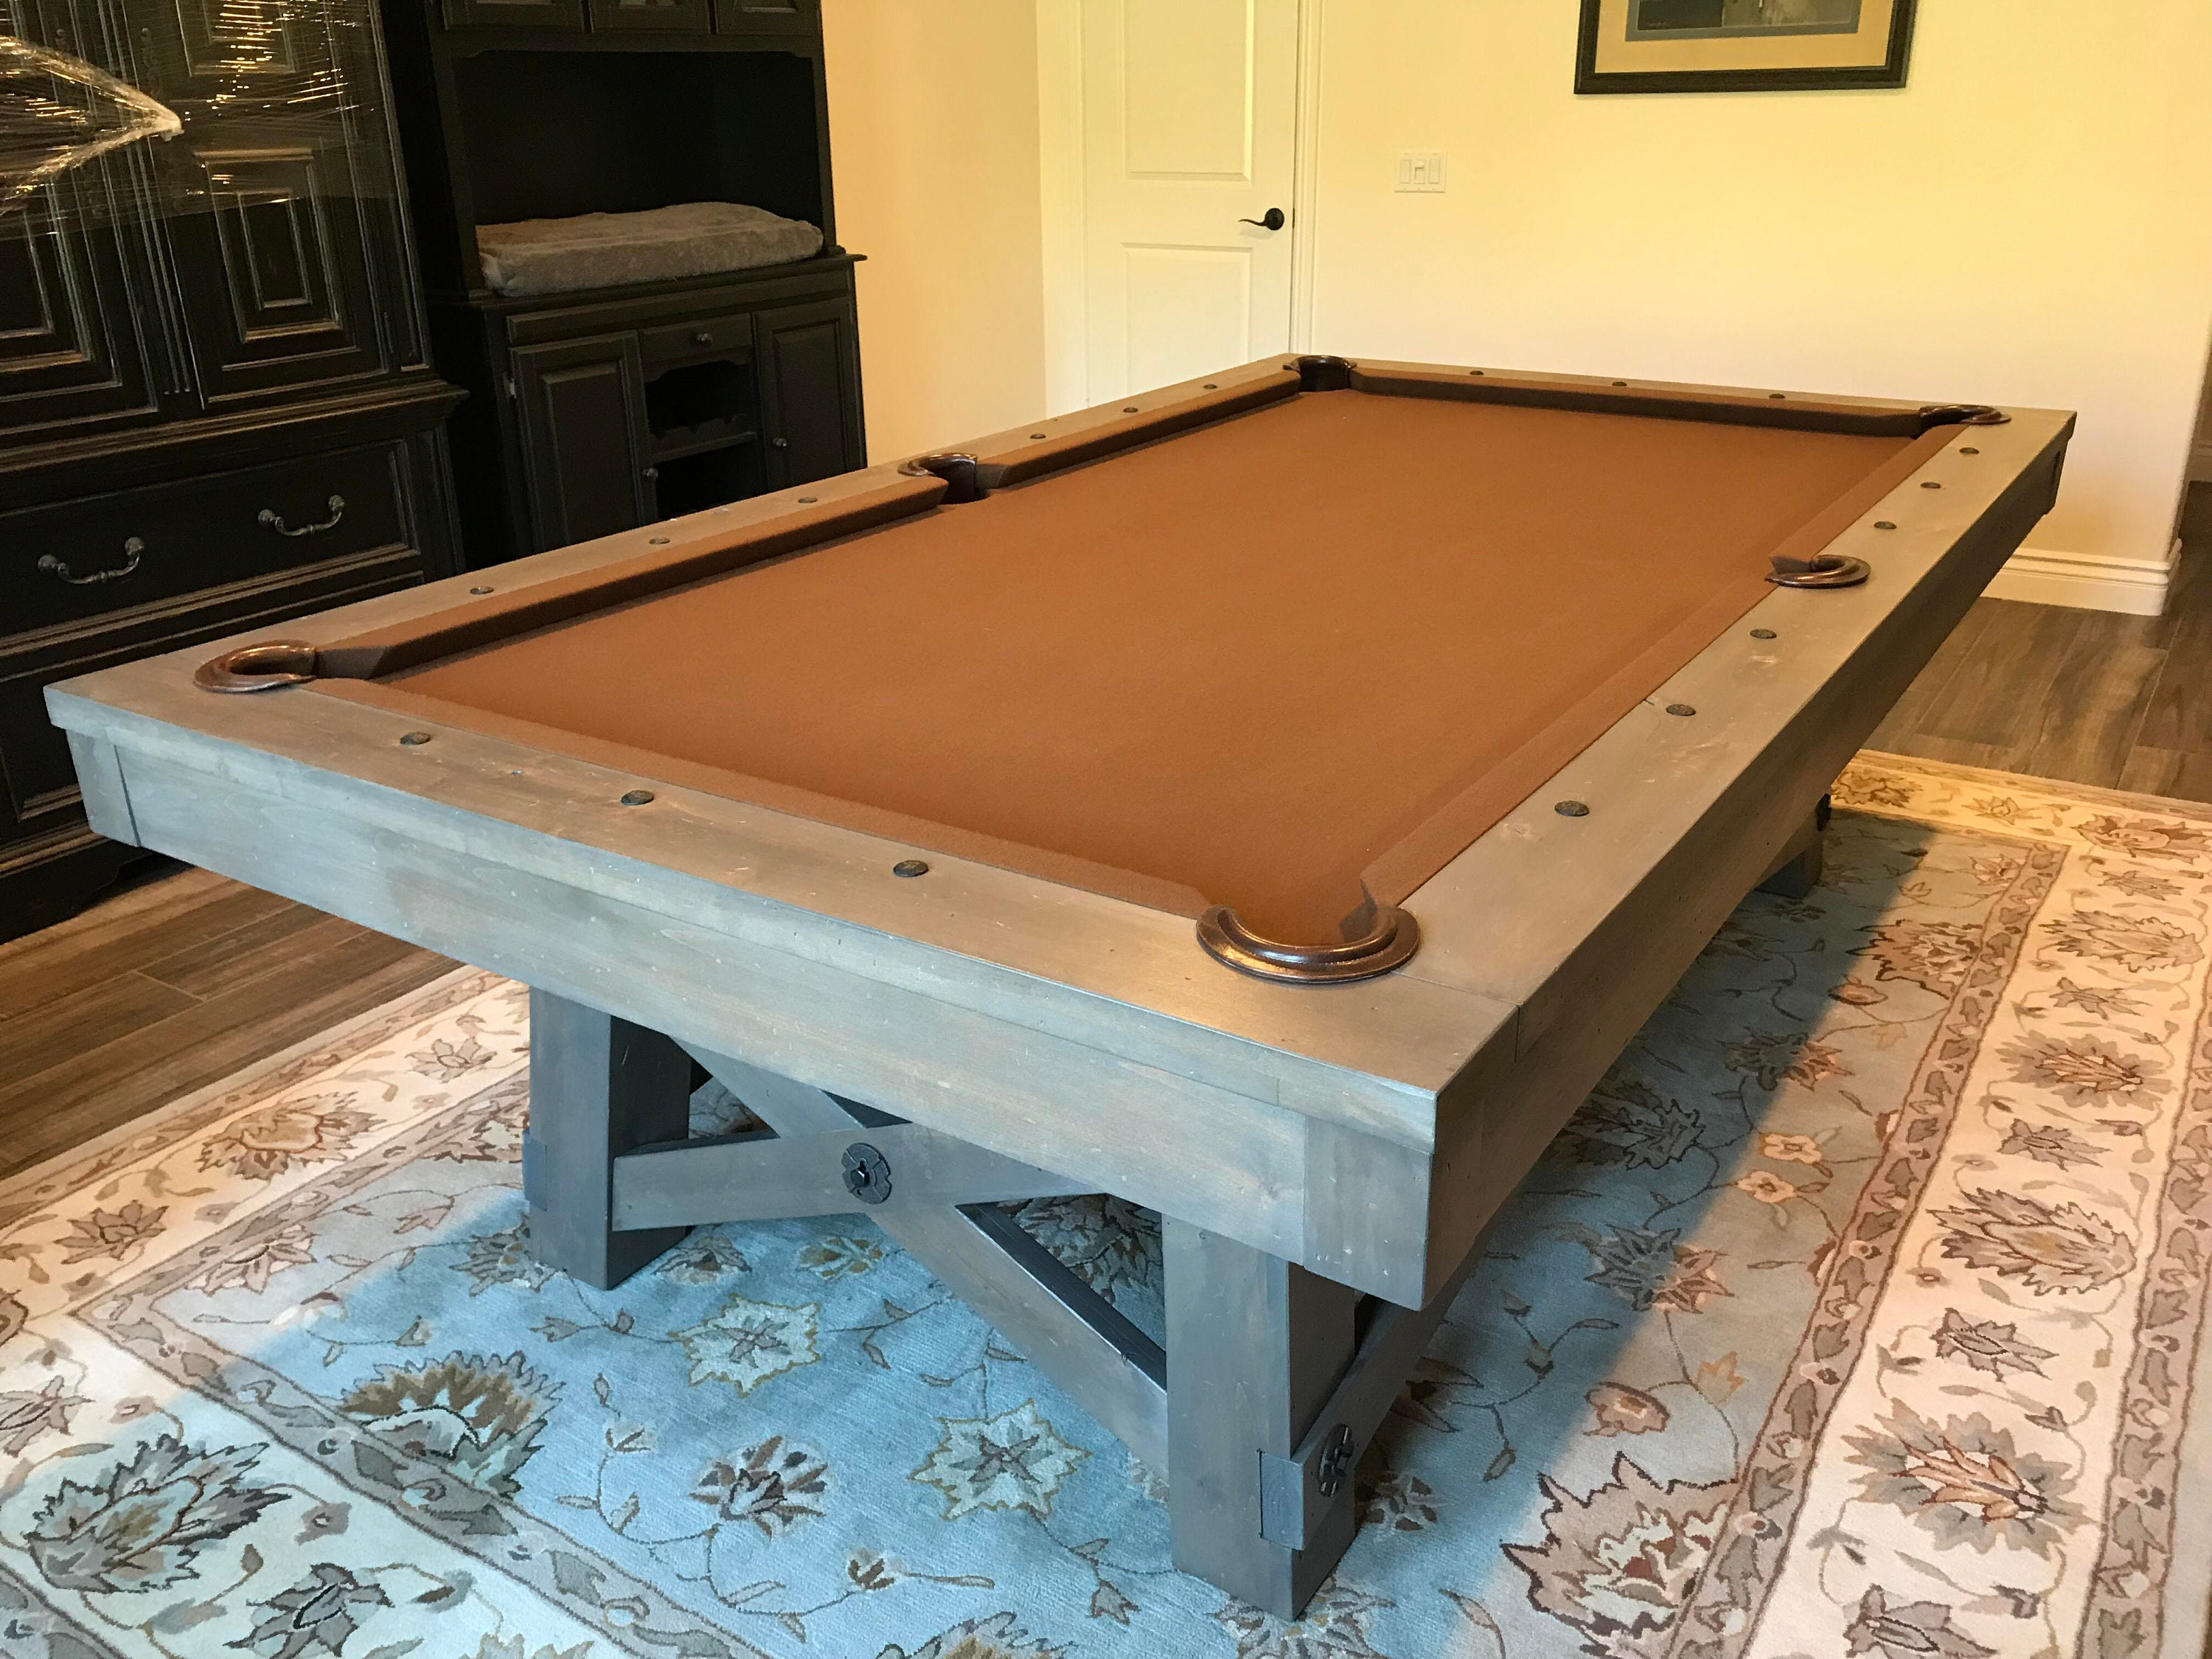 Billiards Pool Table Pool Game Man Cave Mancave Decor Game Room - Pool table pad